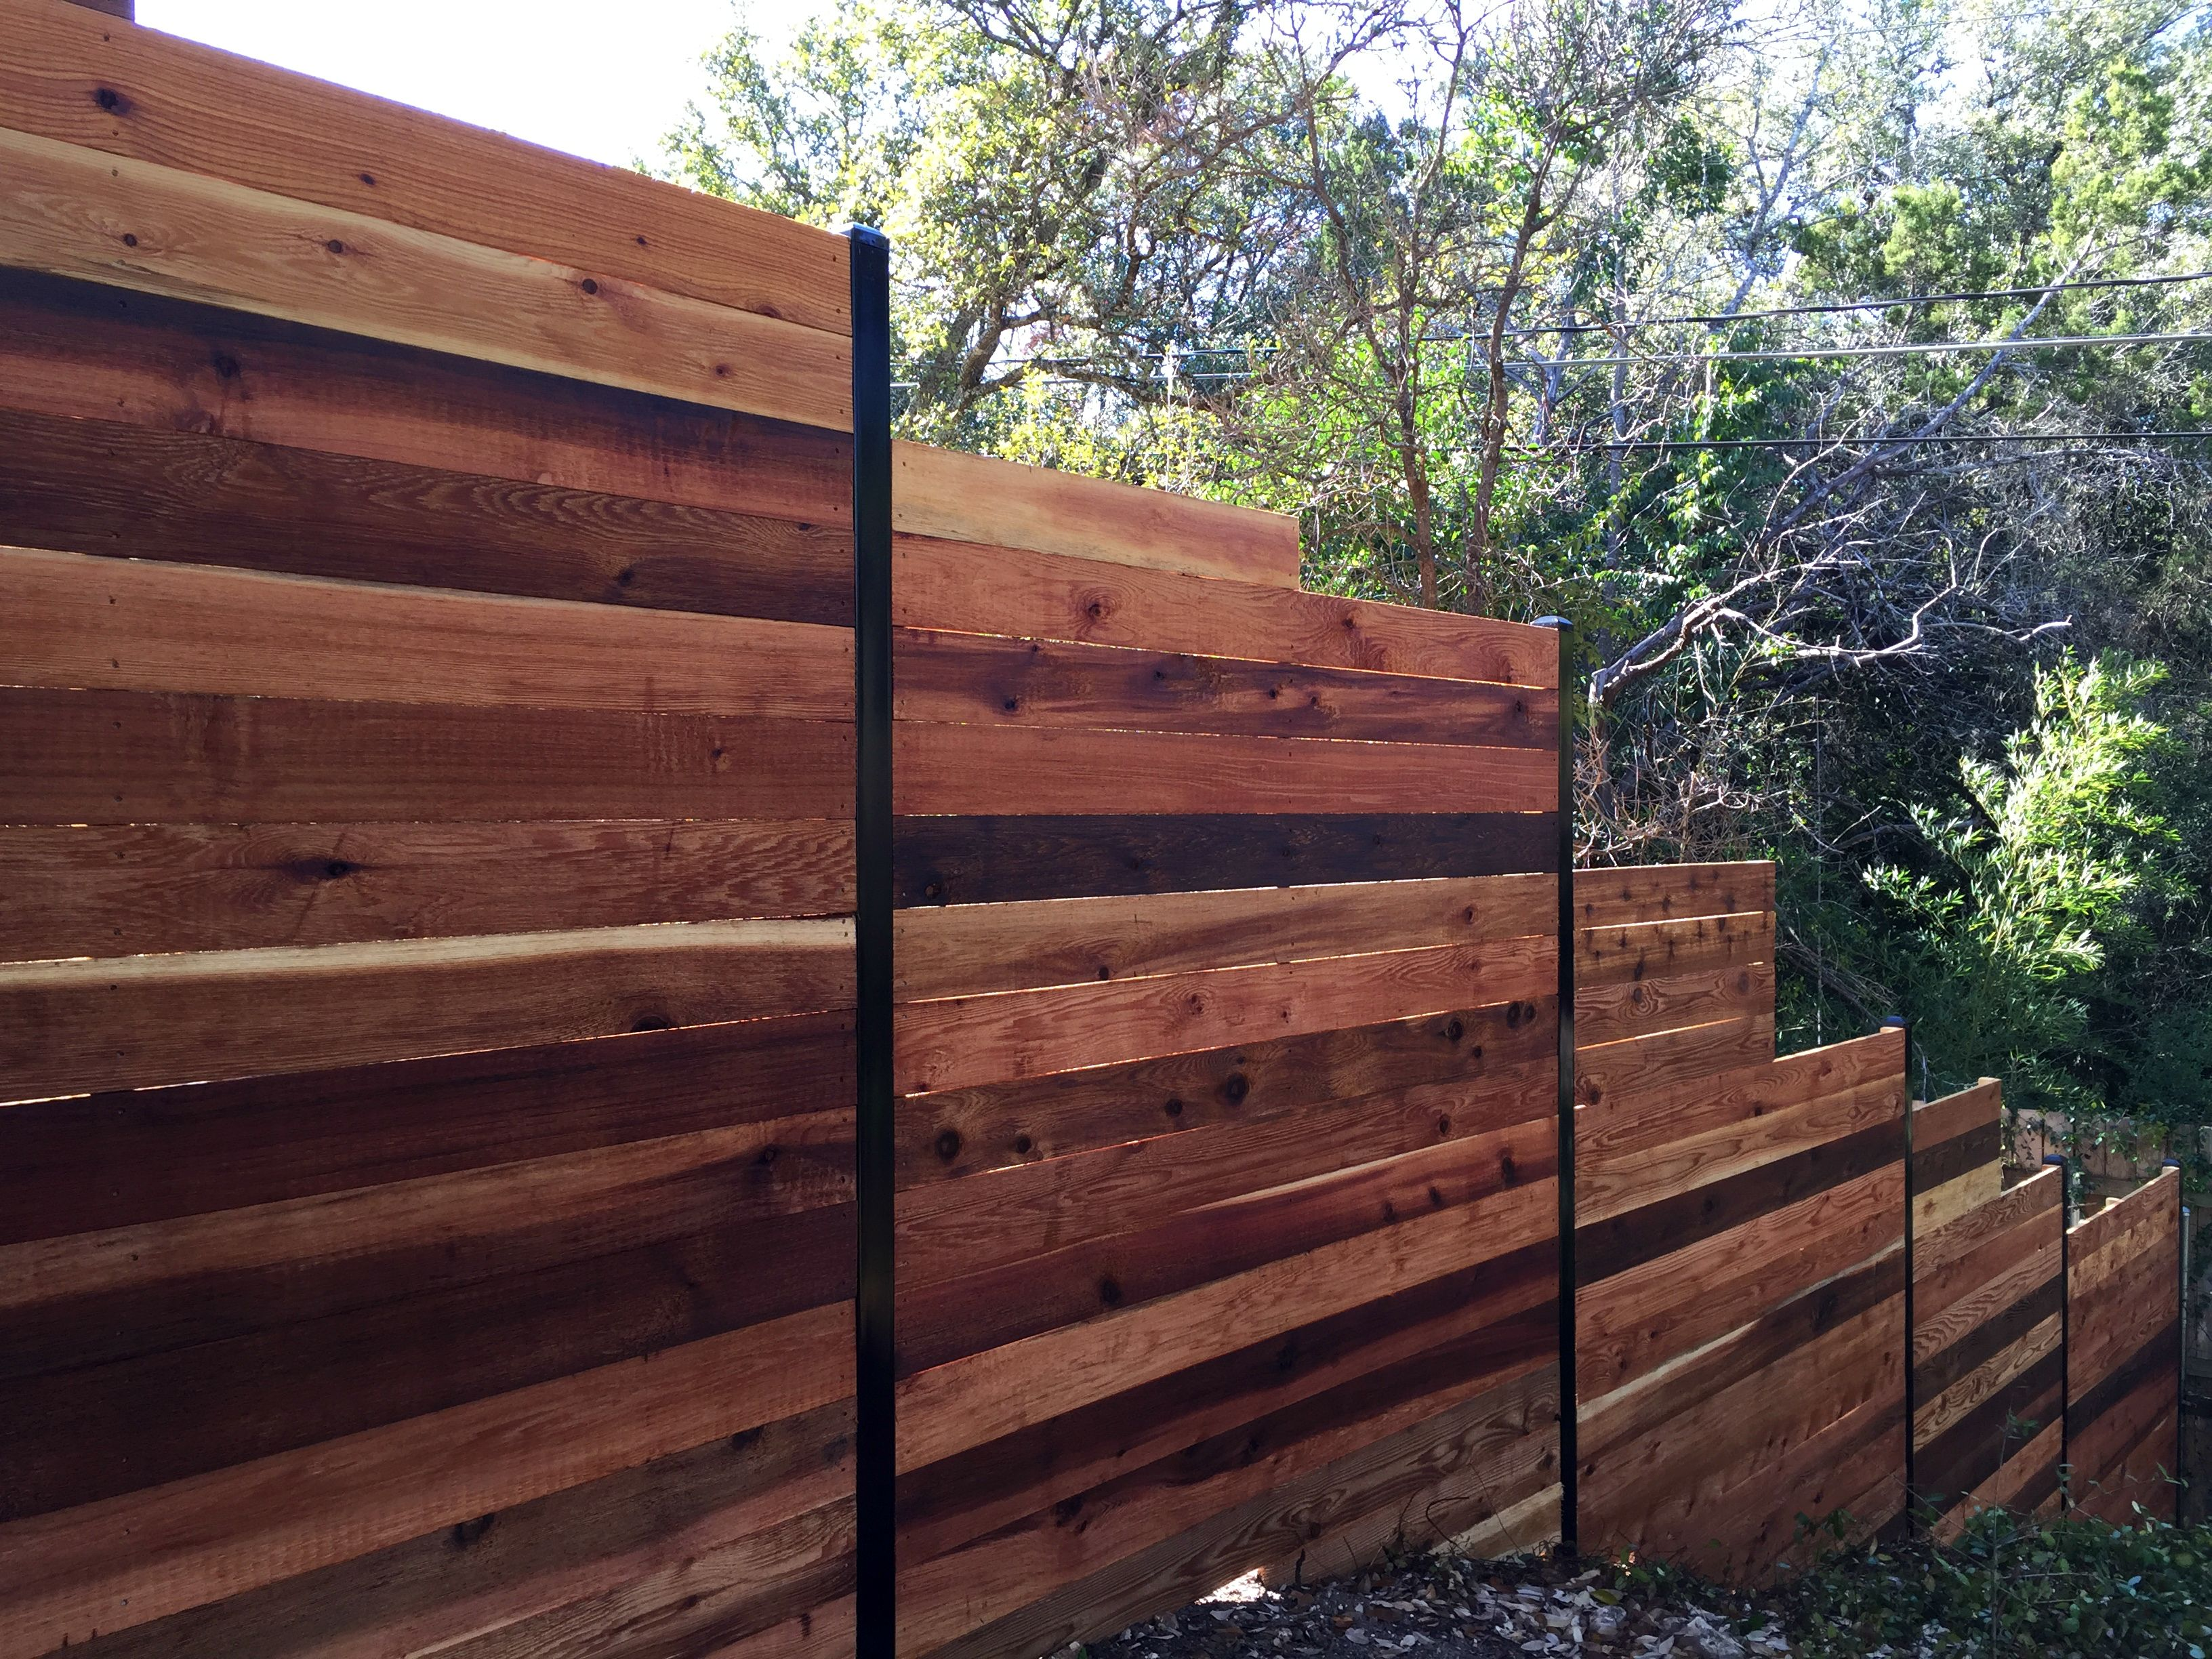 6 H Horizontal Cedar Privacy Framed Between 3 Black Steel Posts Check Out Www Fence4atx To See More Great Ideas For Your Property